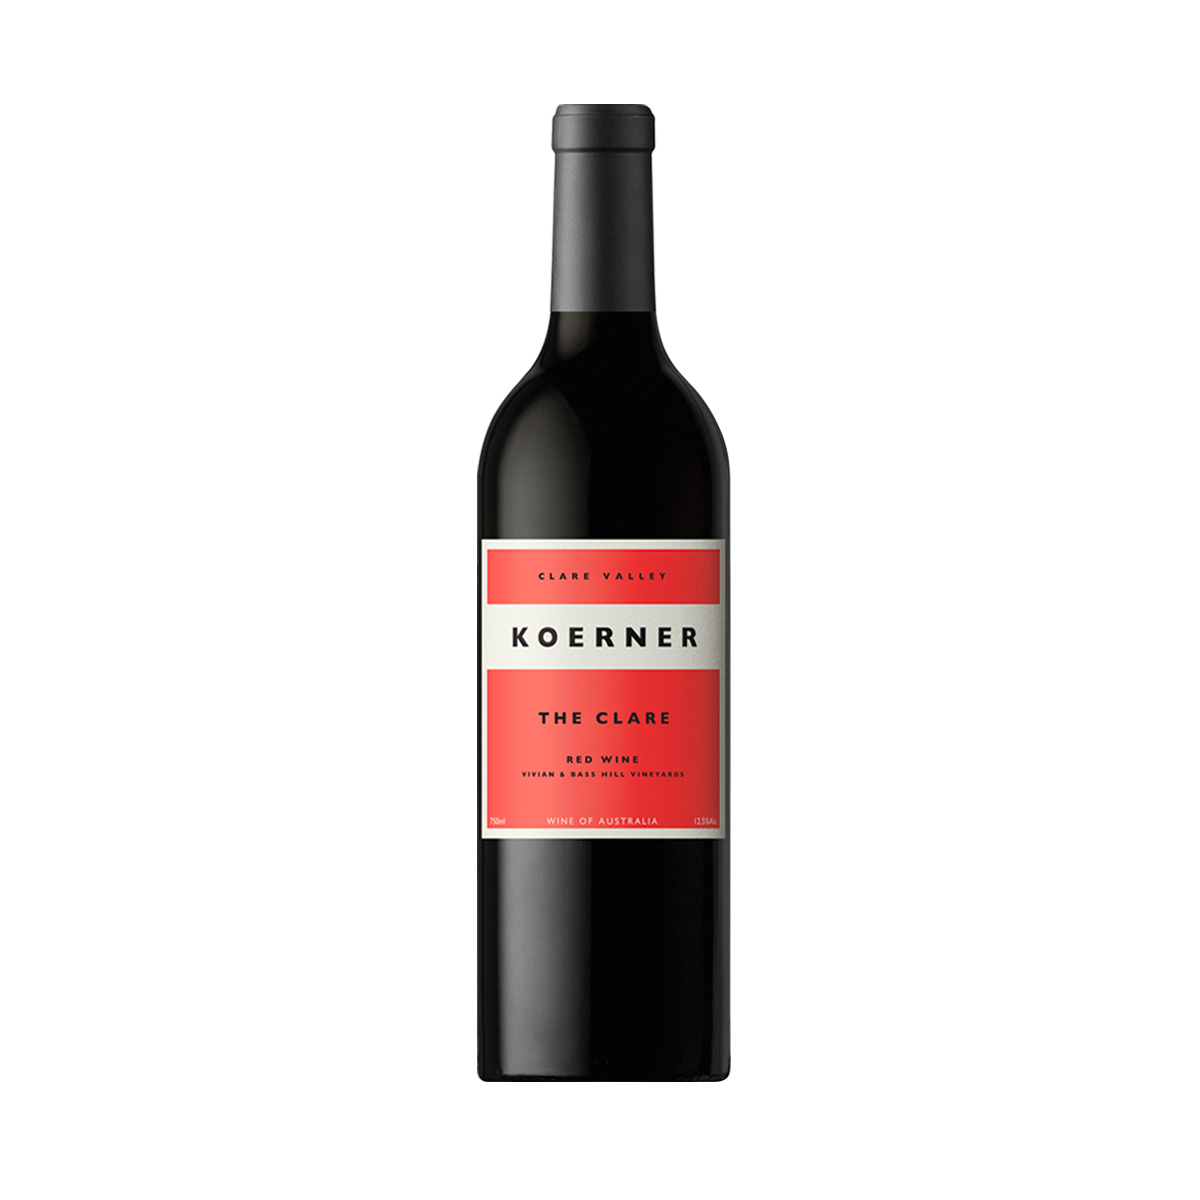 Koerner The Clare Red Wine 2019